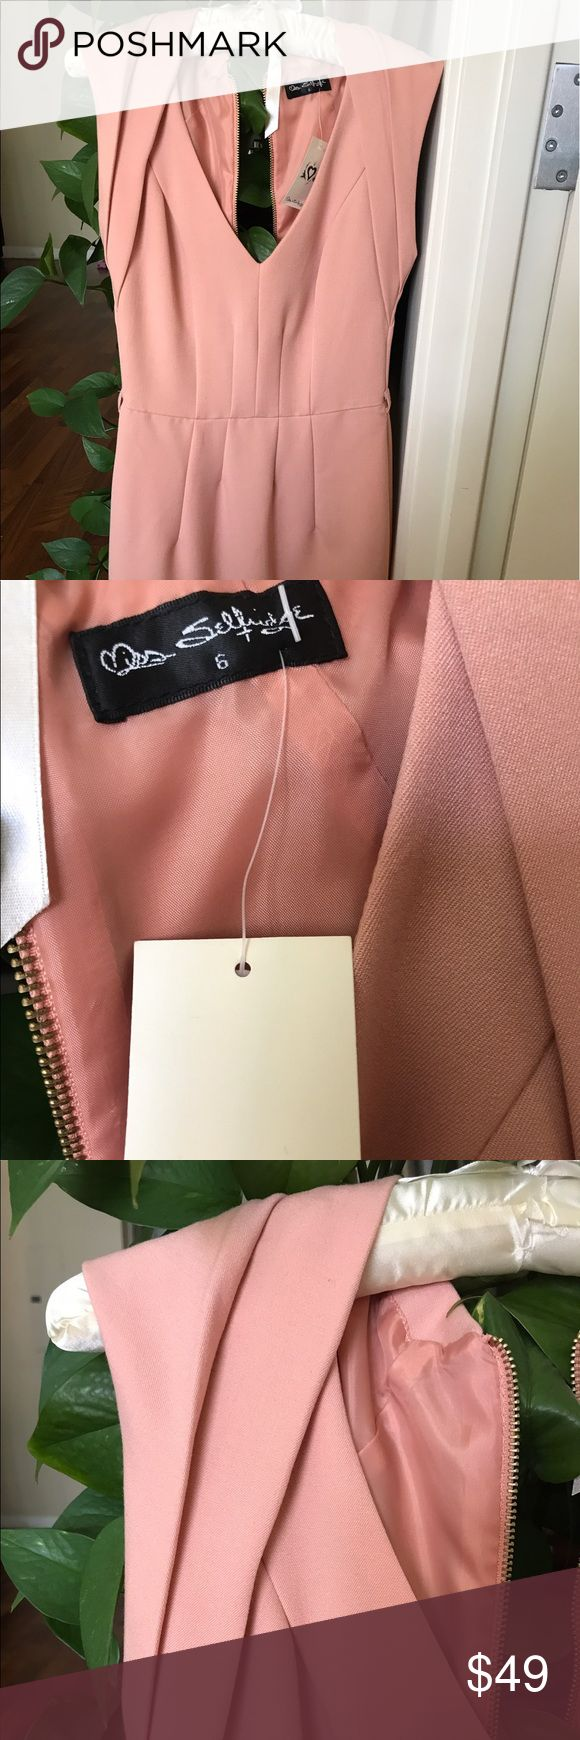 70% OFF 🔥Miss Selfridge UK dress with tags Gorgeous pink dress brand new with tags. Perfect for parties and to dress up. Washable fabric. It's a size 6 U.K., would say Xxs or 00 US as waist measurement is 24 inches. It's beautifully fitted with zip up in the back. Too small for me! Motivated to sell 😃 Miss Selfridge Dresses Midi